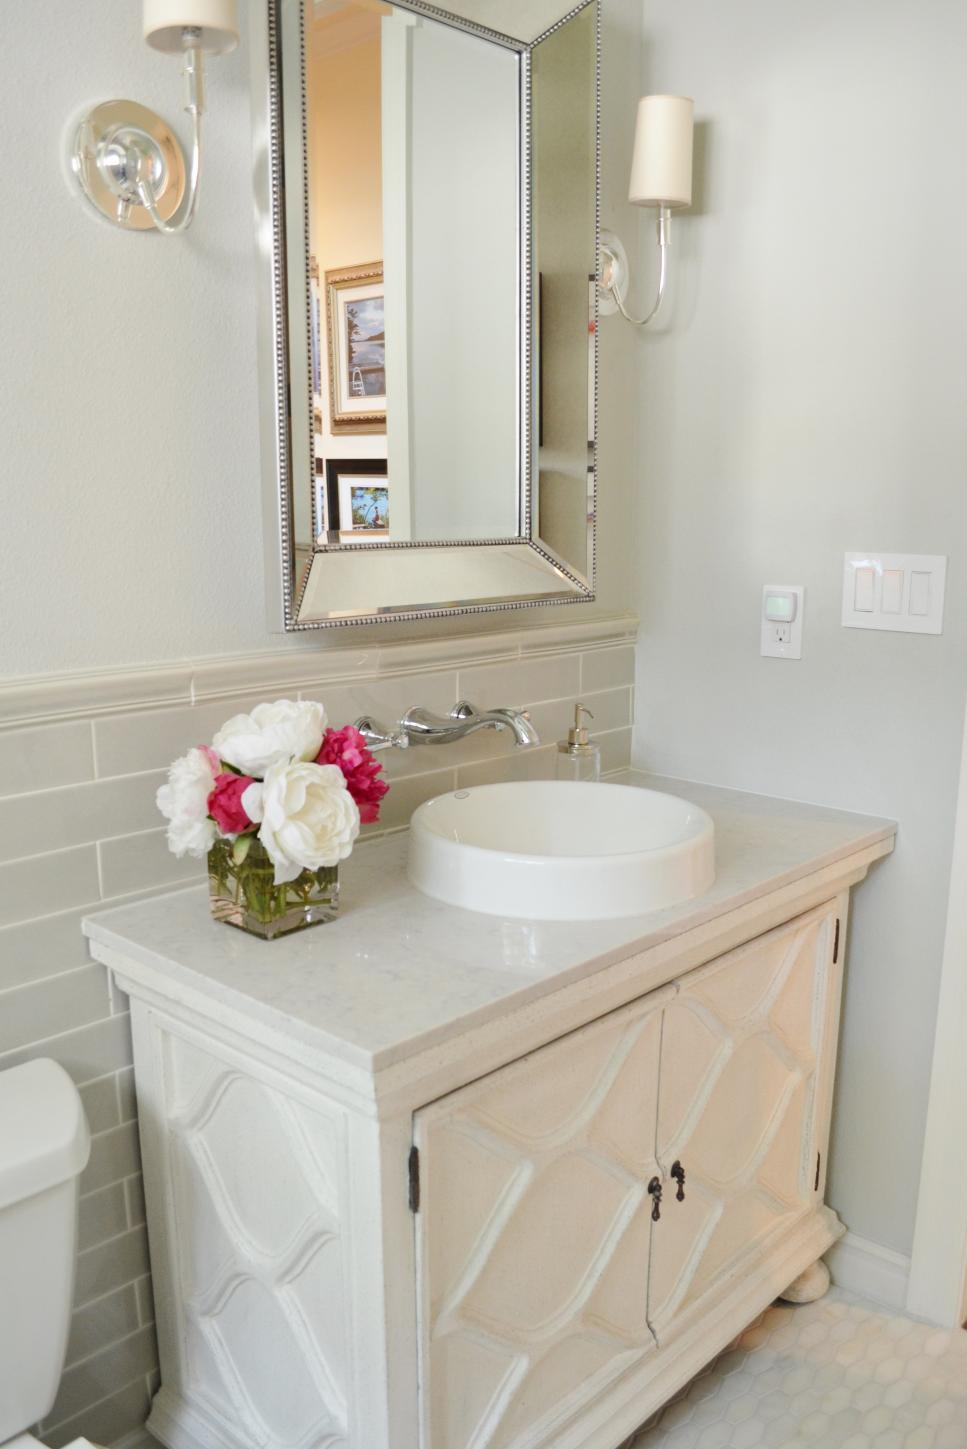 BeforeandAfter Bathroom Remodels On A Budget HGTV - Pictures of small bathroom remodels for bathroom decor ideas